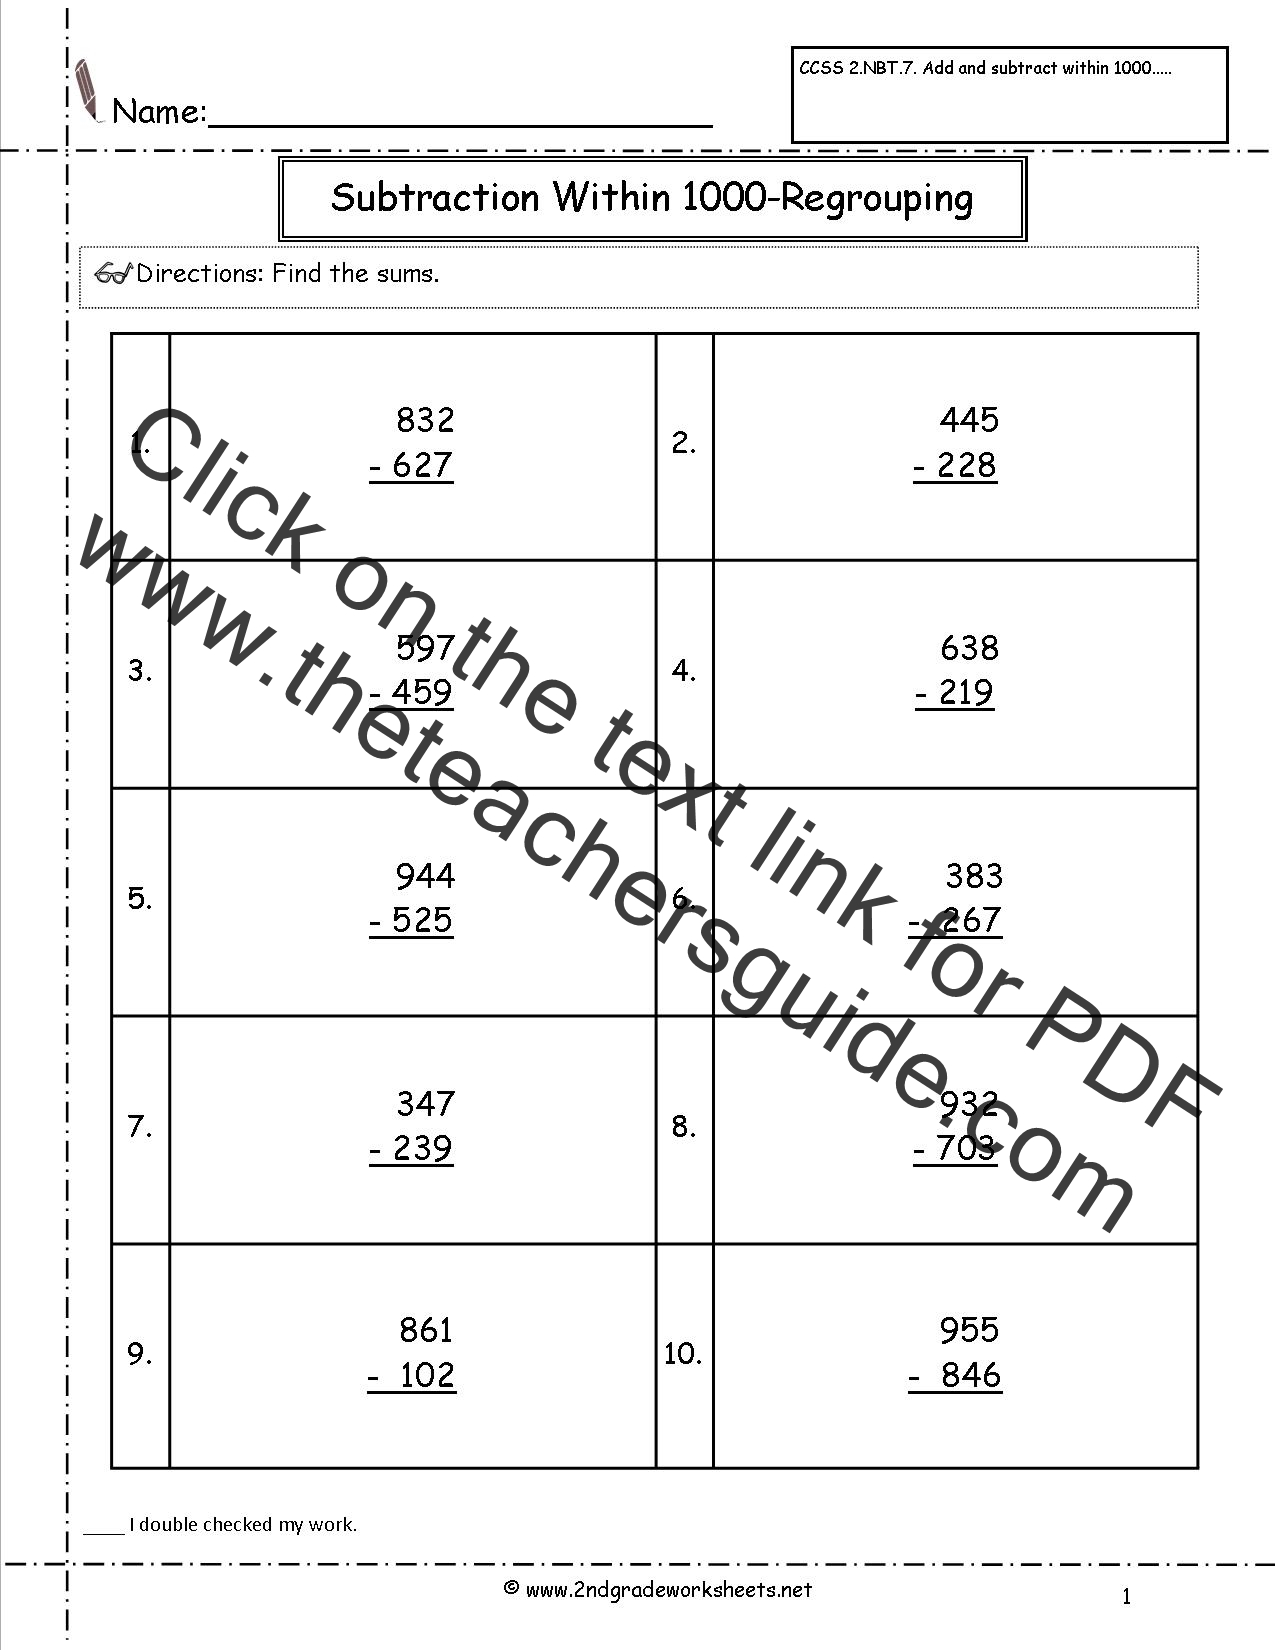 CCSS 2NBT7 Worksheets Addition and Subtraction Within 1000 – Common Core Subtraction Worksheets